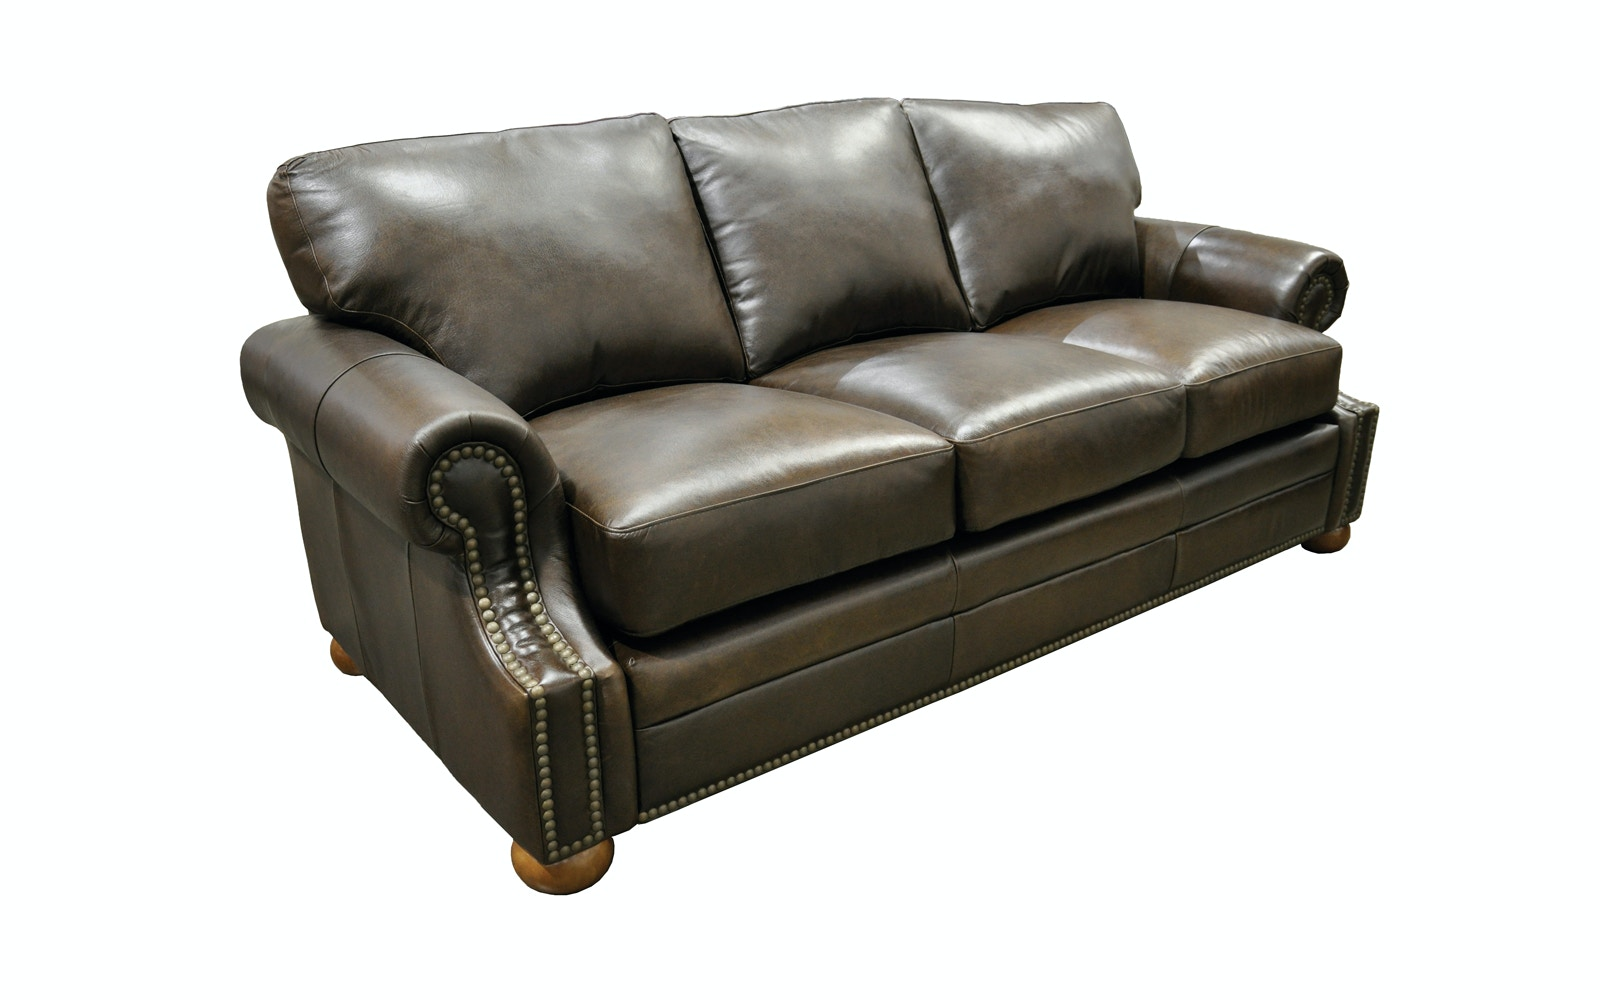 Omnia Leather Bennett Sofa Bennett 3C Sofa 13001